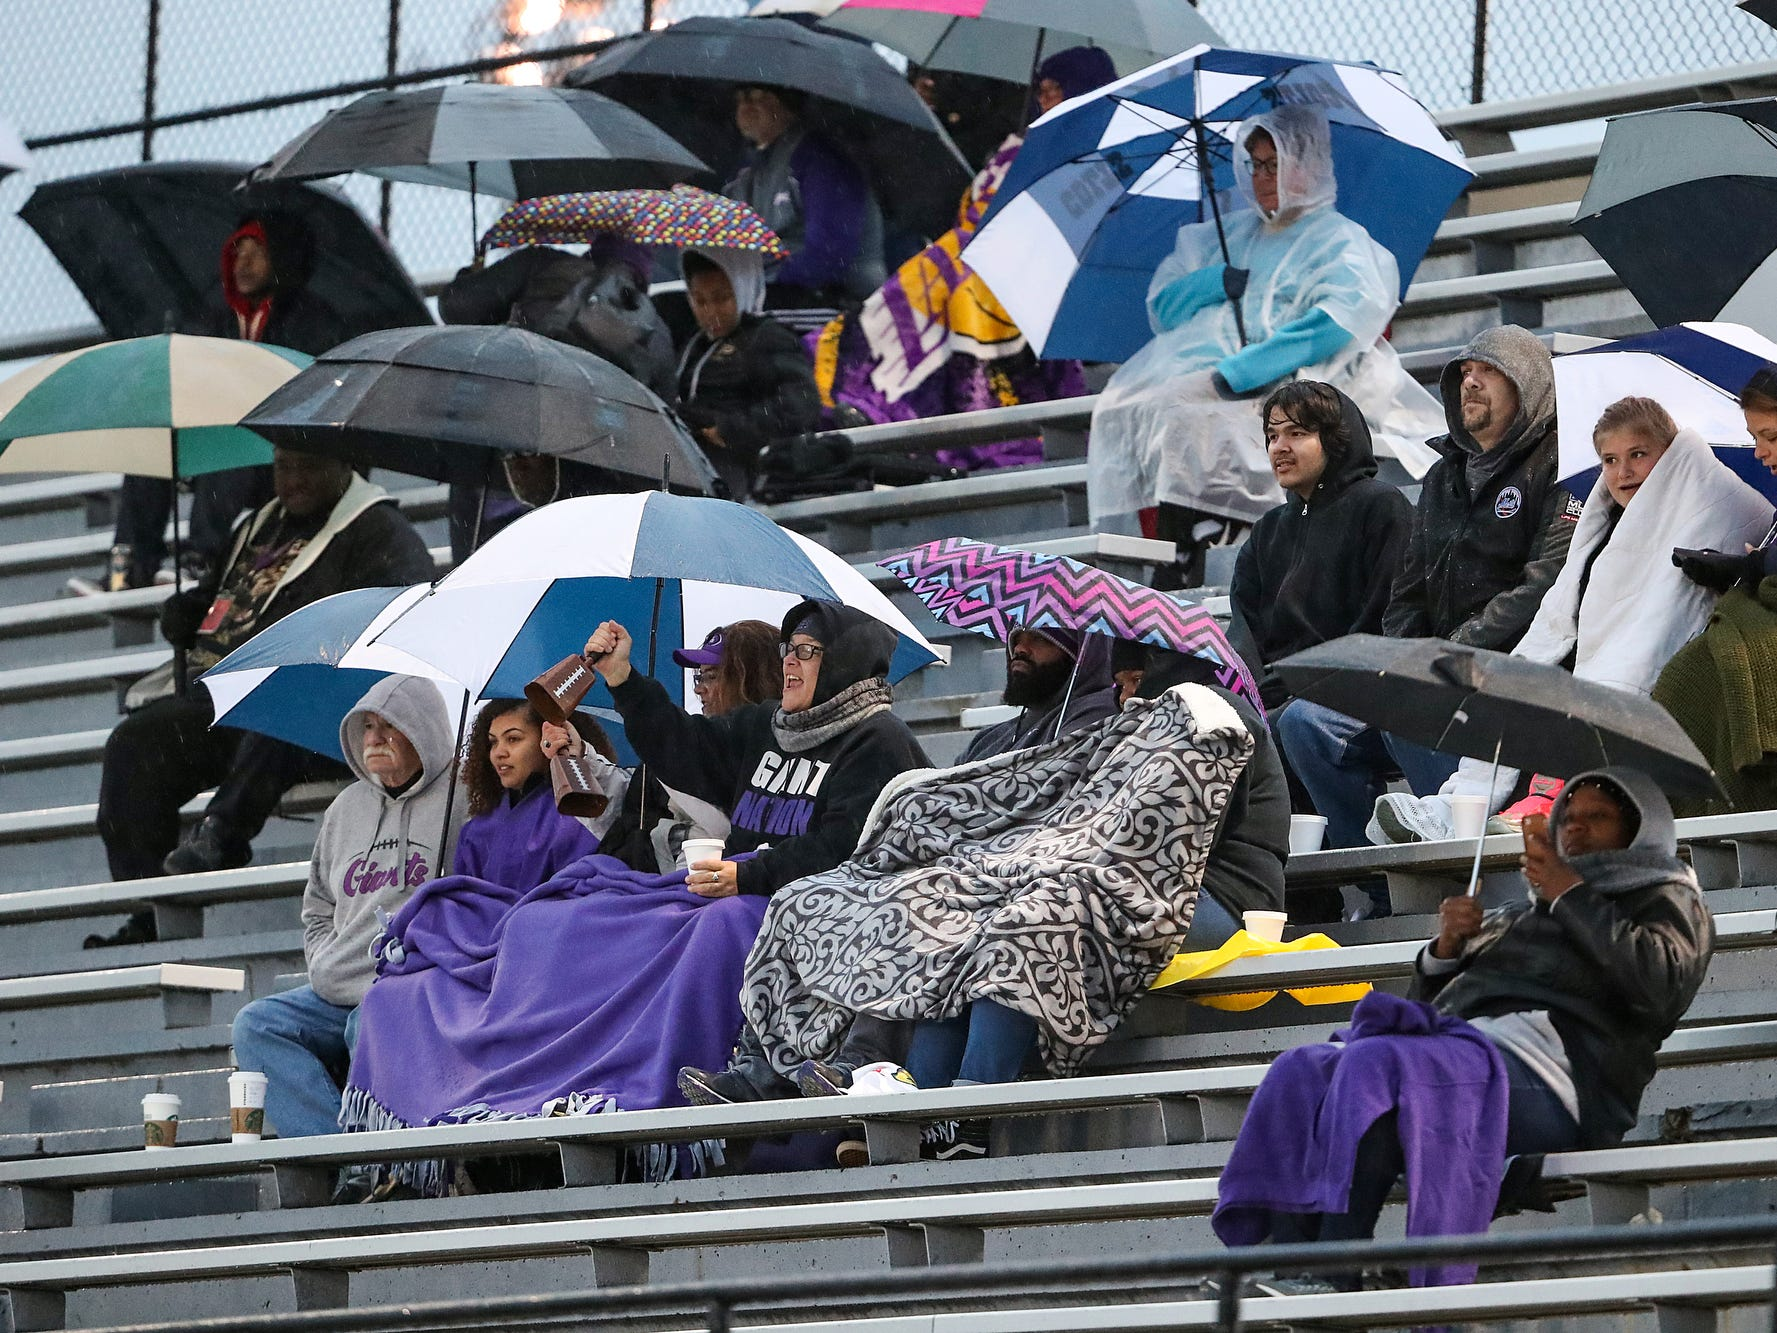 Fans take shelters from the rain and cold in the first half of the game at North Central High School in Indianapolis, Oct. 12, 2018.